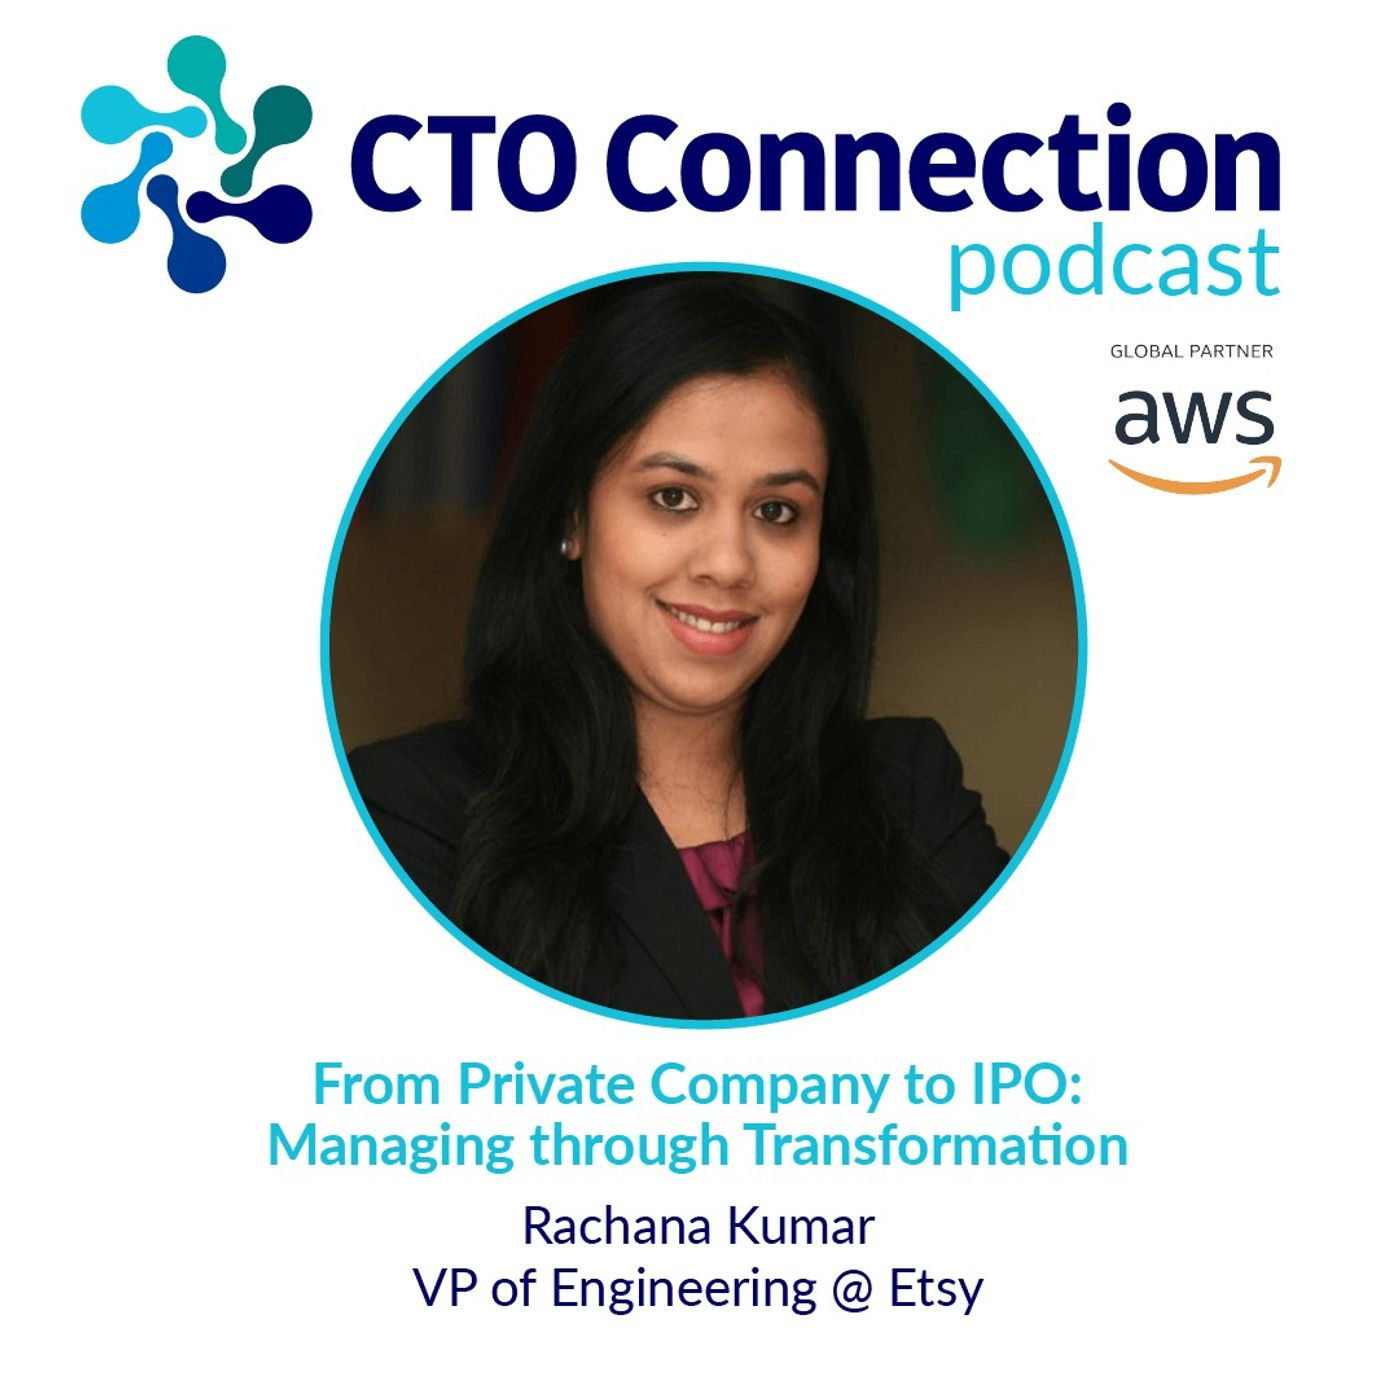 From Private Company to IPO: Managing through Transformation with Rachana Kumar